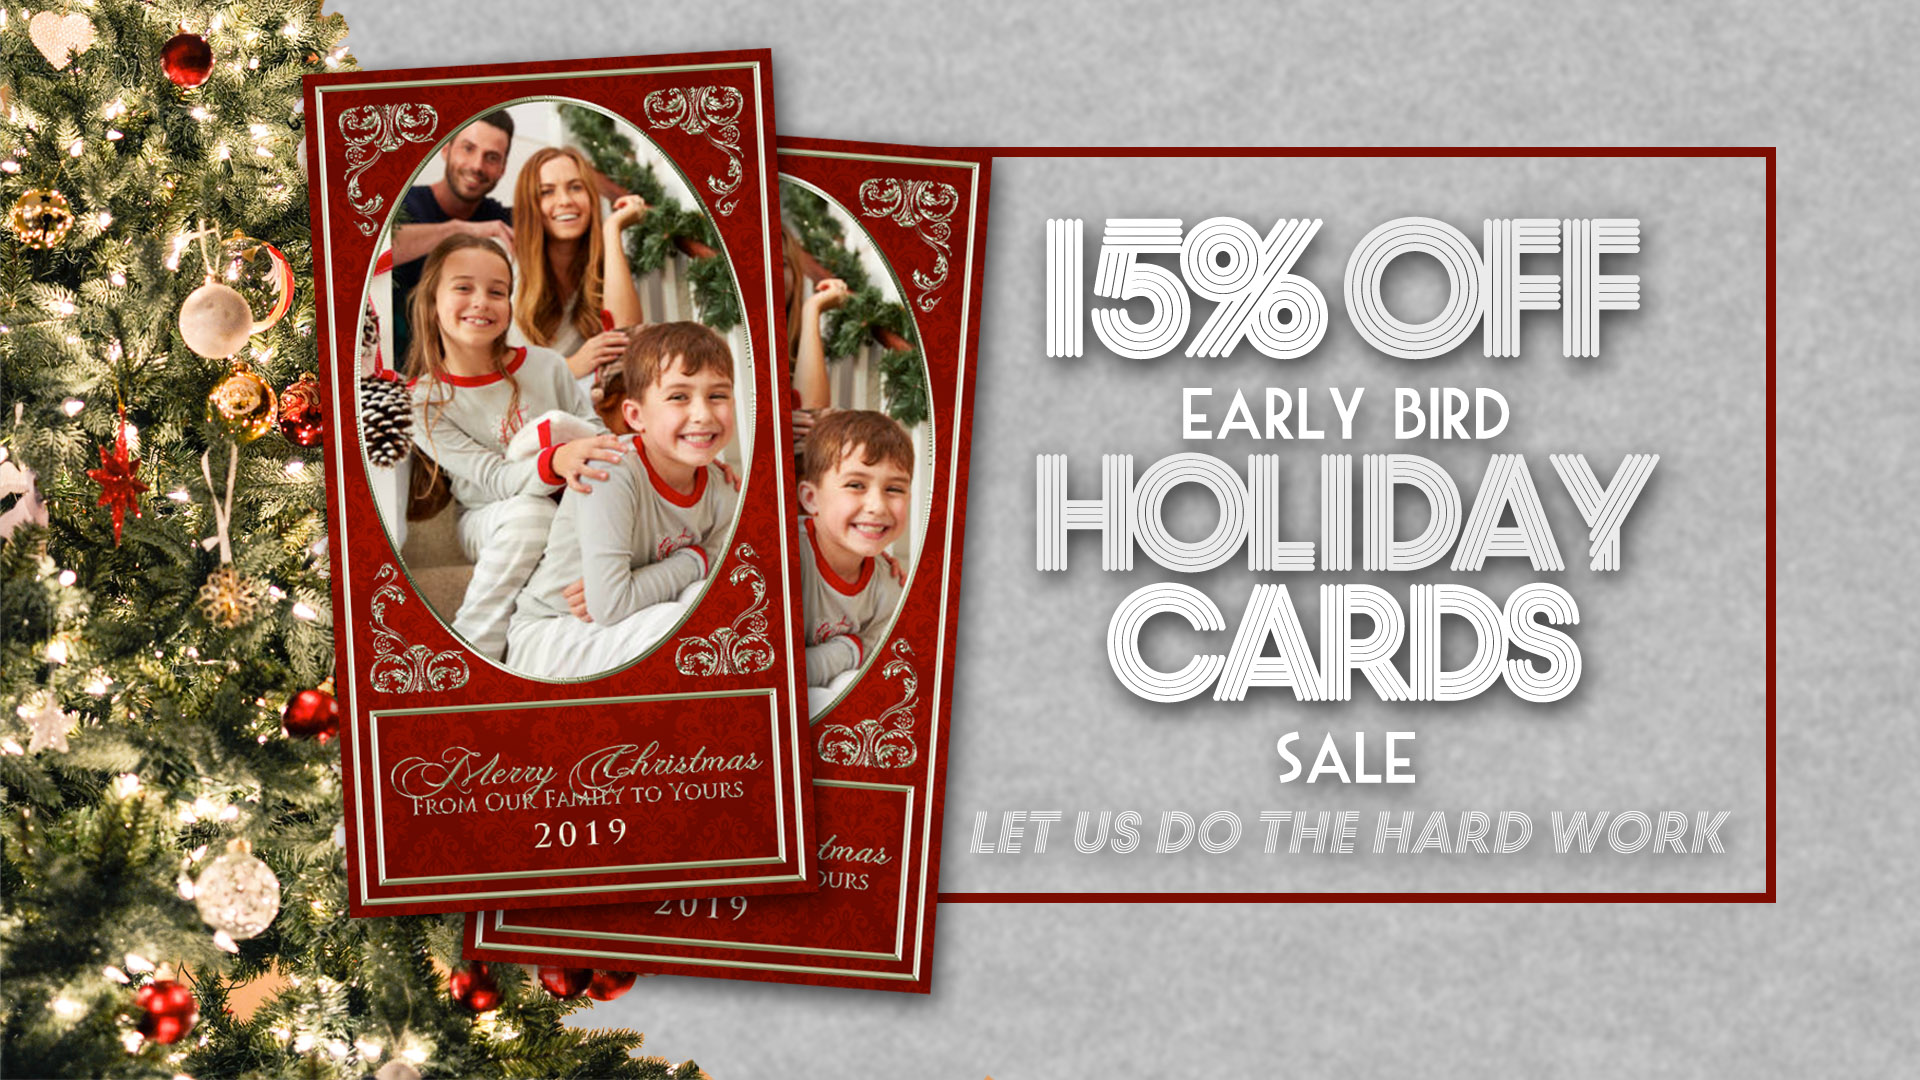 15% OFF Early Bird Holiday Card Sale